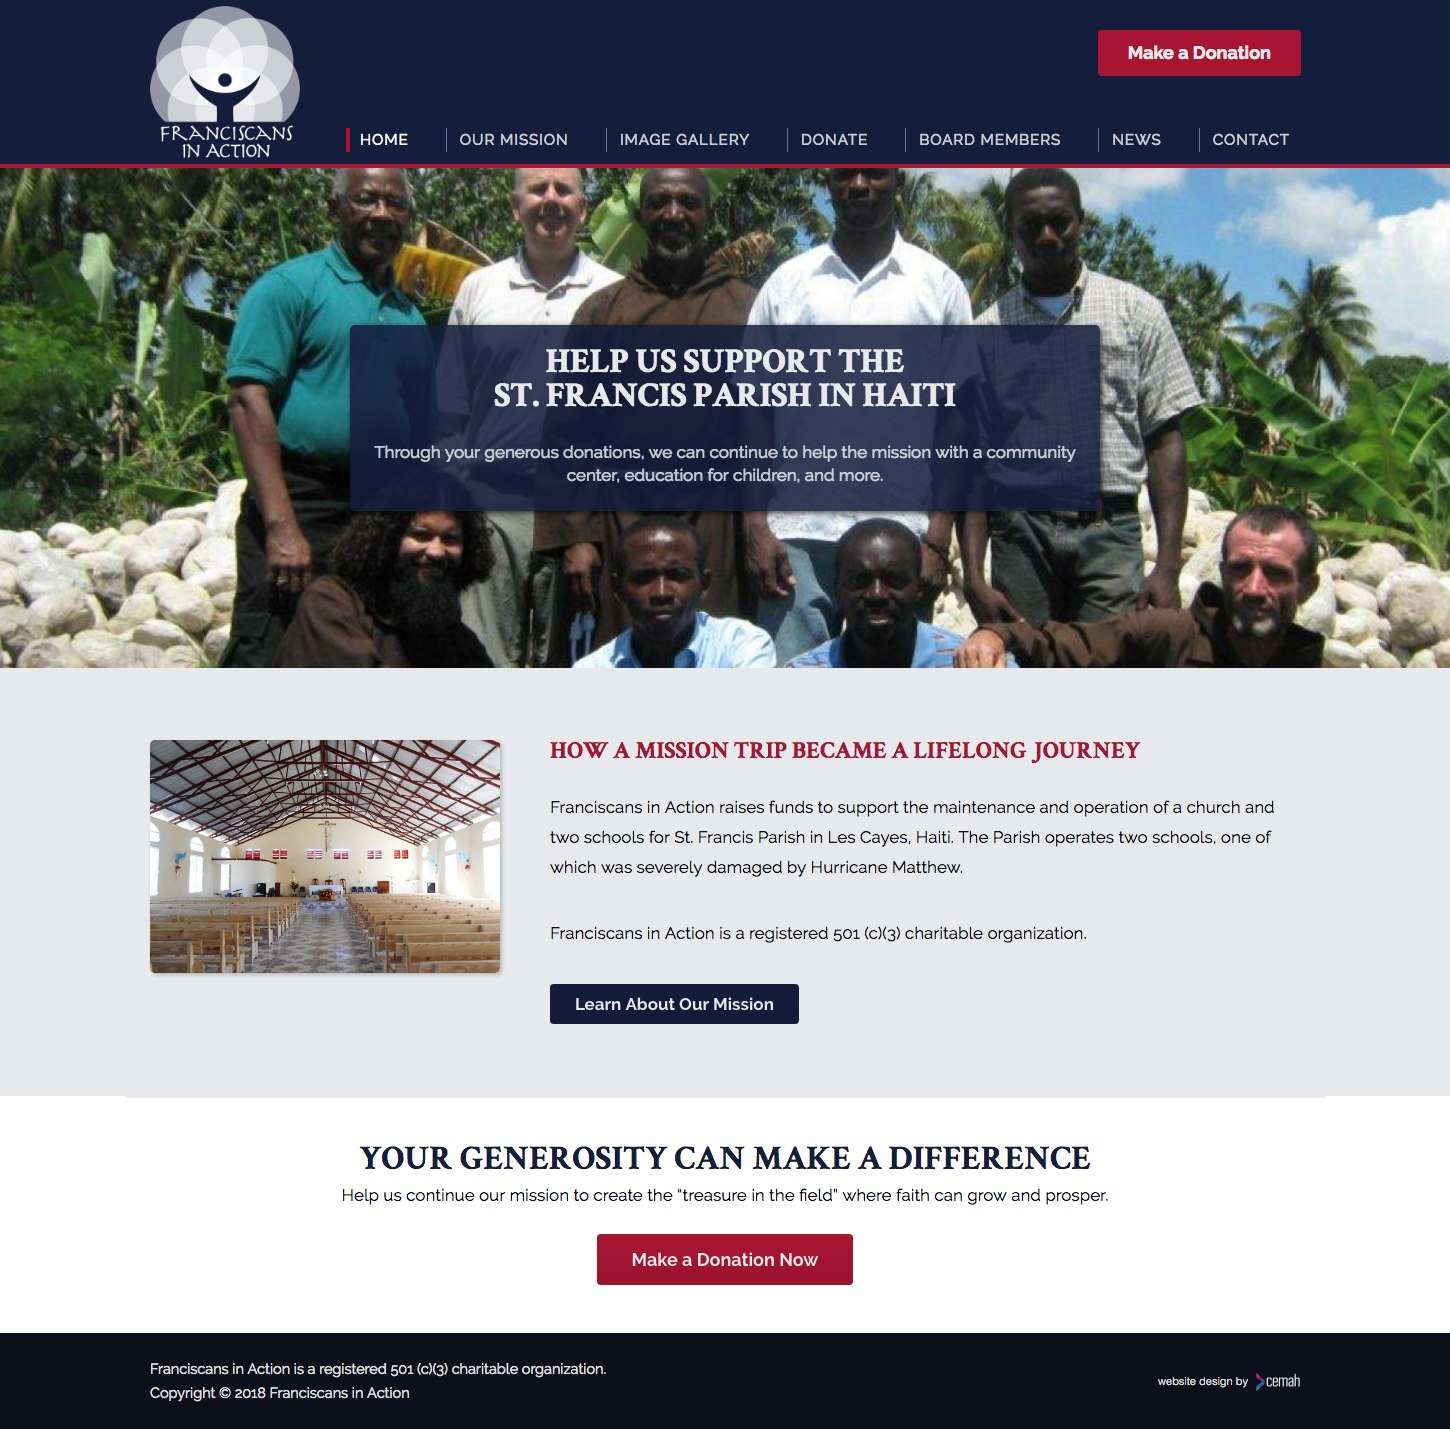 Custom non profit website design created for an organization helping out people in Les Cayes, Haiti.